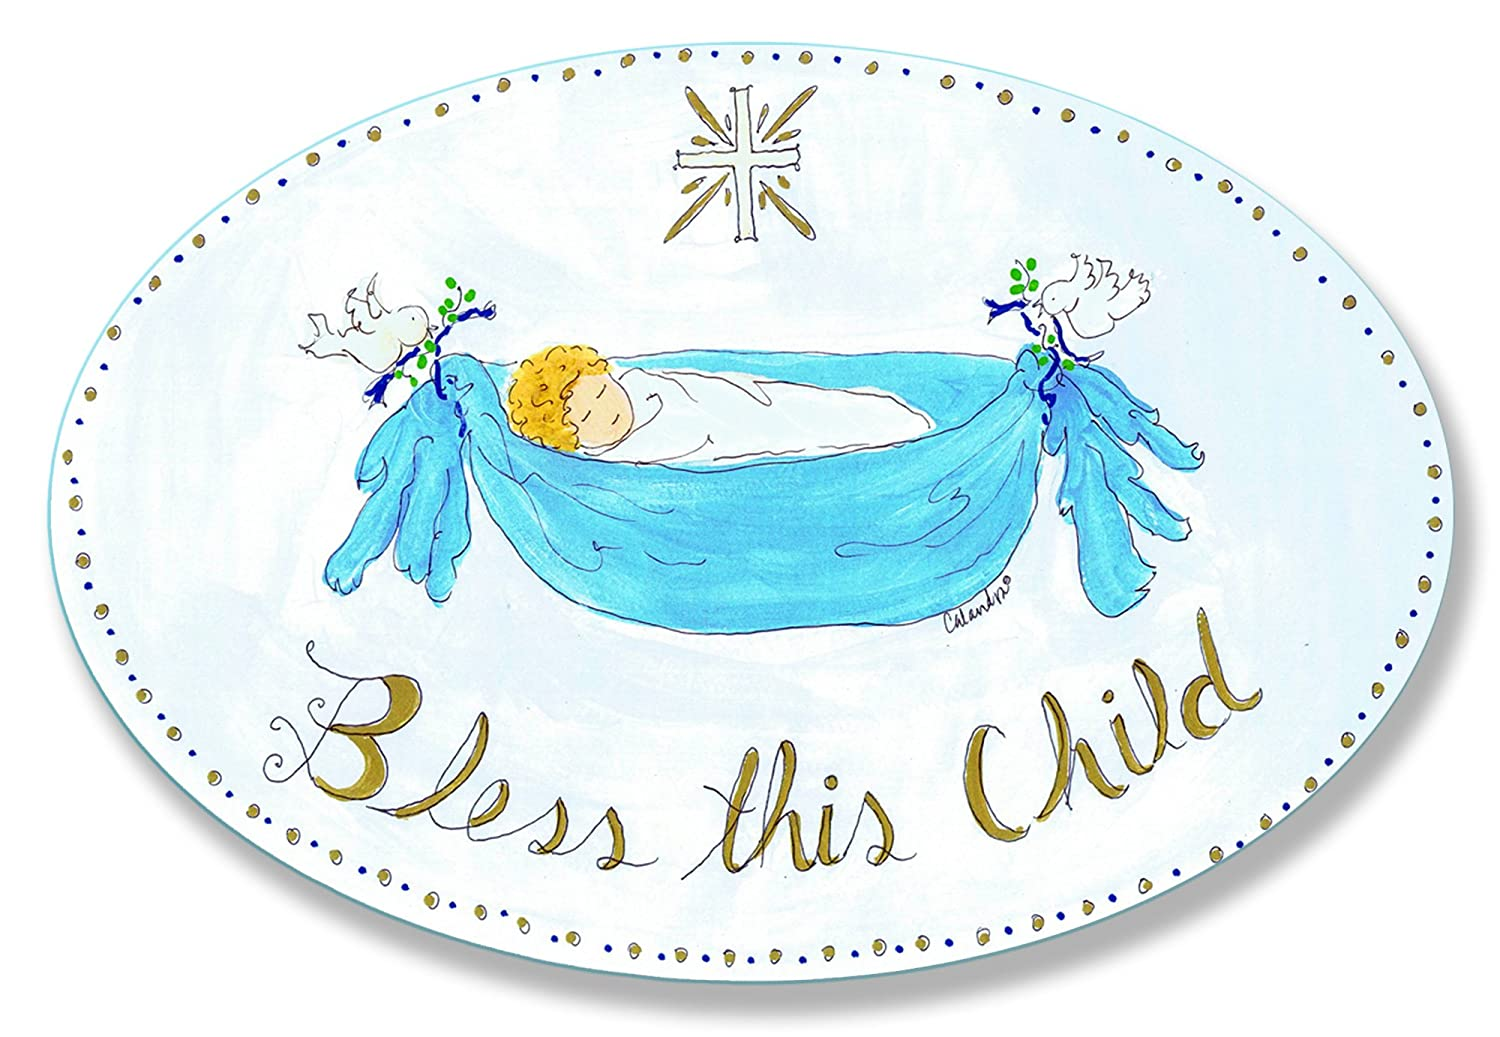 The Kids Room by Stupell Bless This Child with Baby in Blue Hammock Oval Wall Plaque brp-754